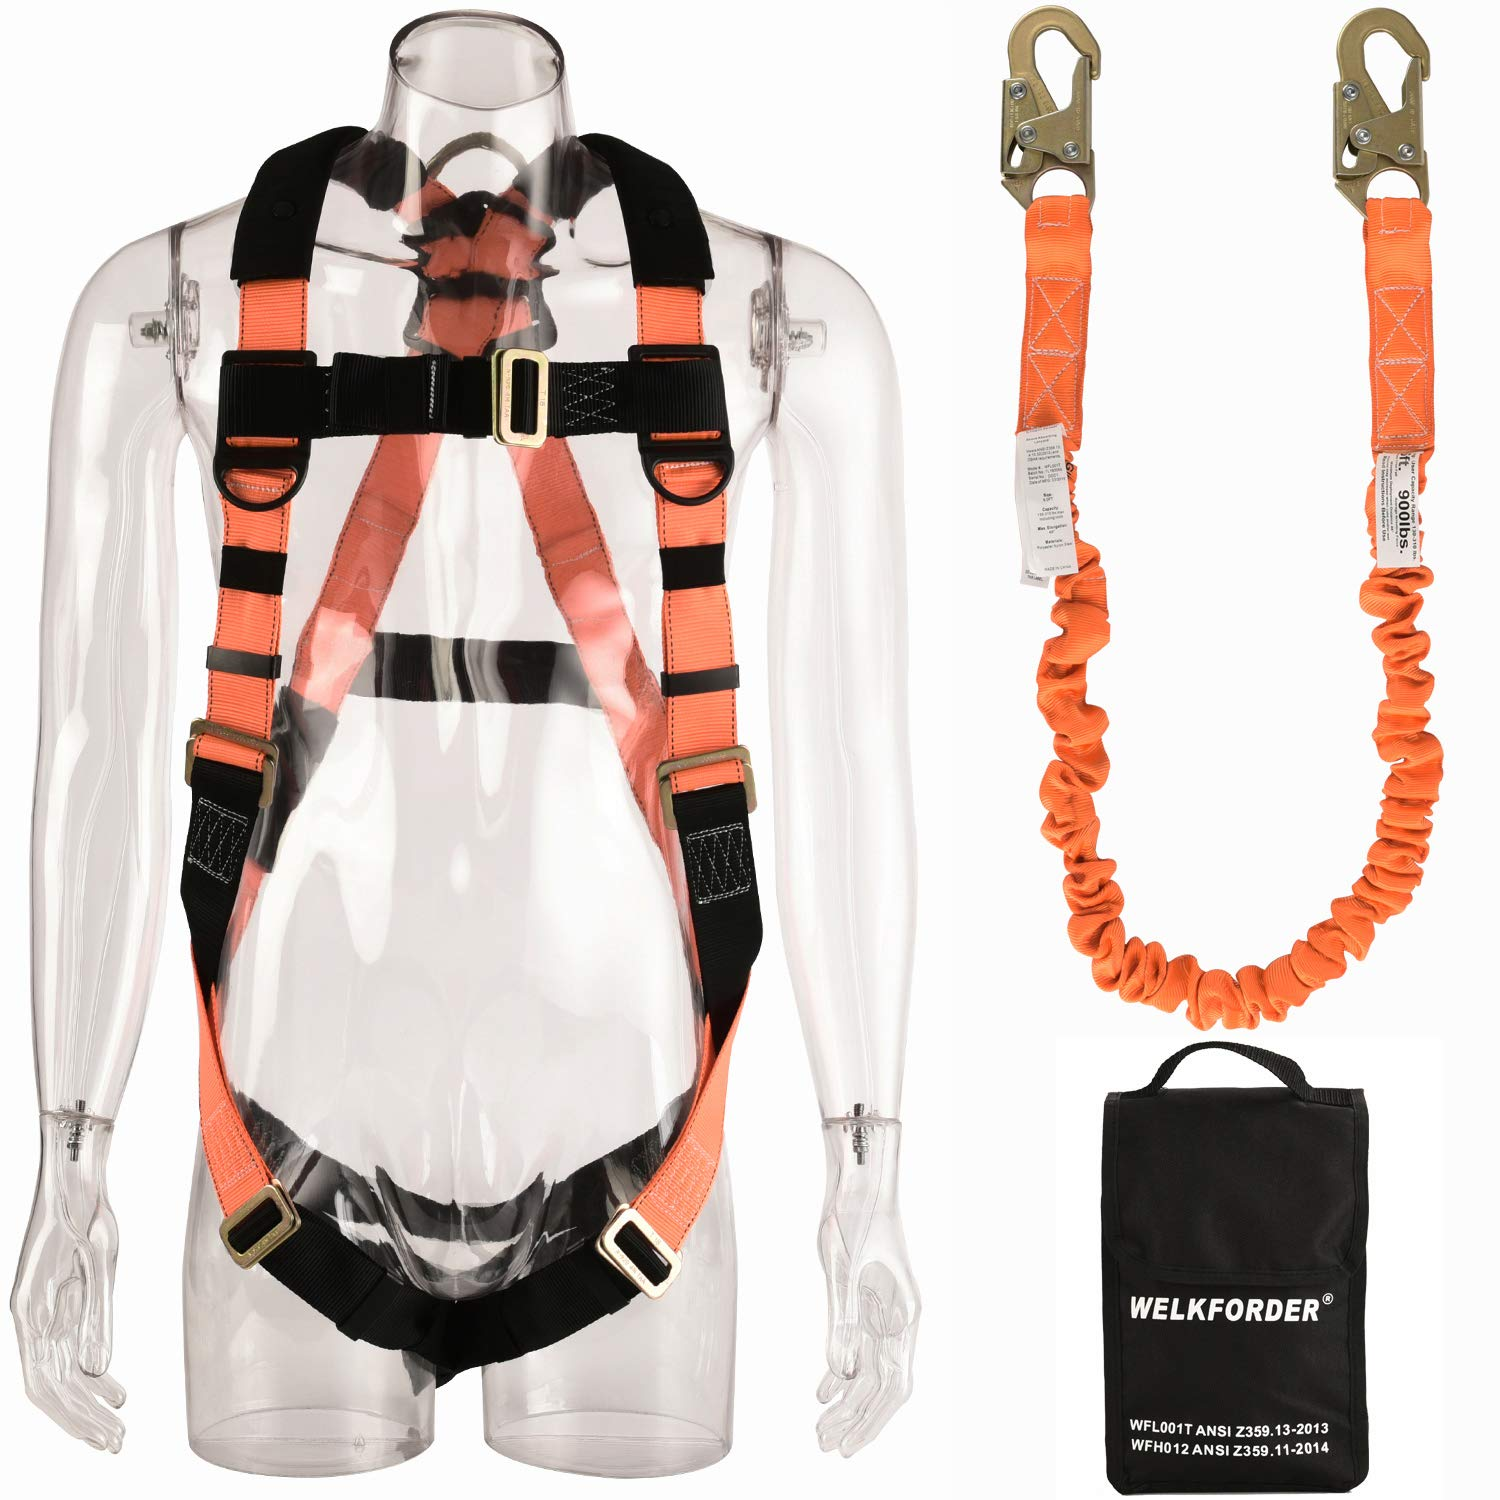 WELKFORDER 1 D-Ring Industrial Fall Protection Safety Harness Kit for Construction With Single Leg 6-Foot Fall Protection Internal Shock Stretchable Lanyard ANSI Complaint for construction by WELKFORDER